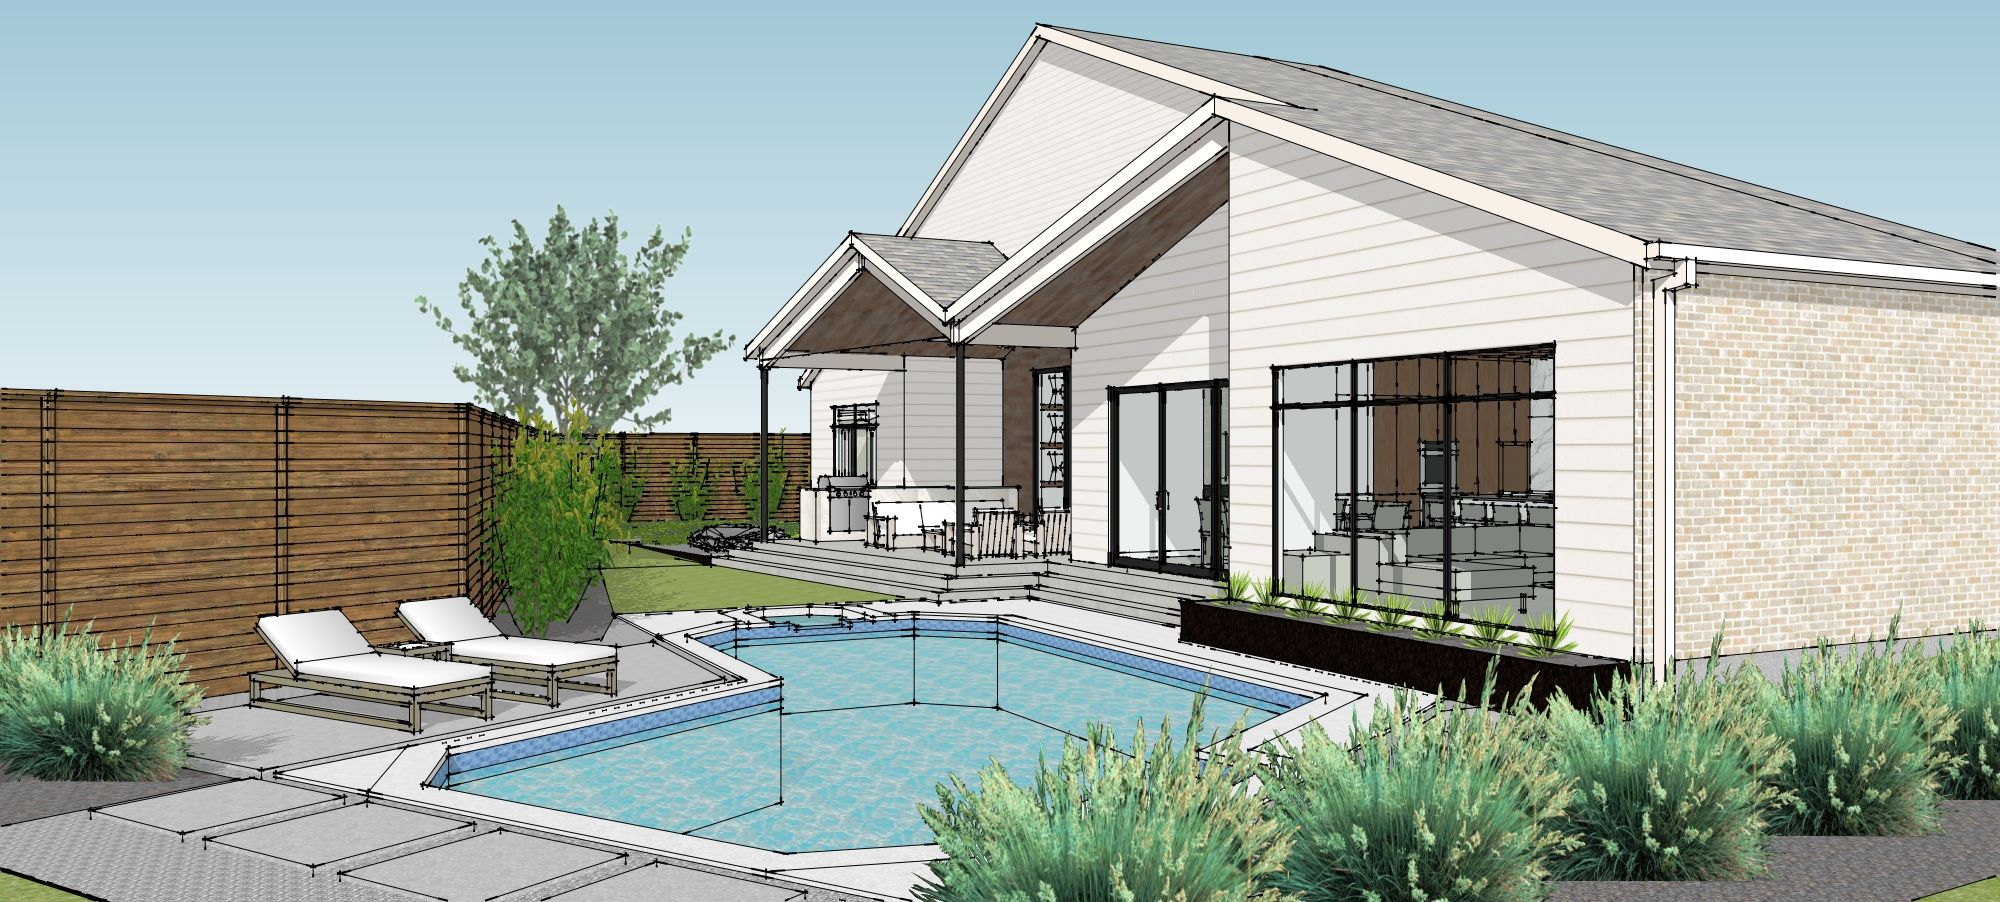 riverview_rear_rendering2